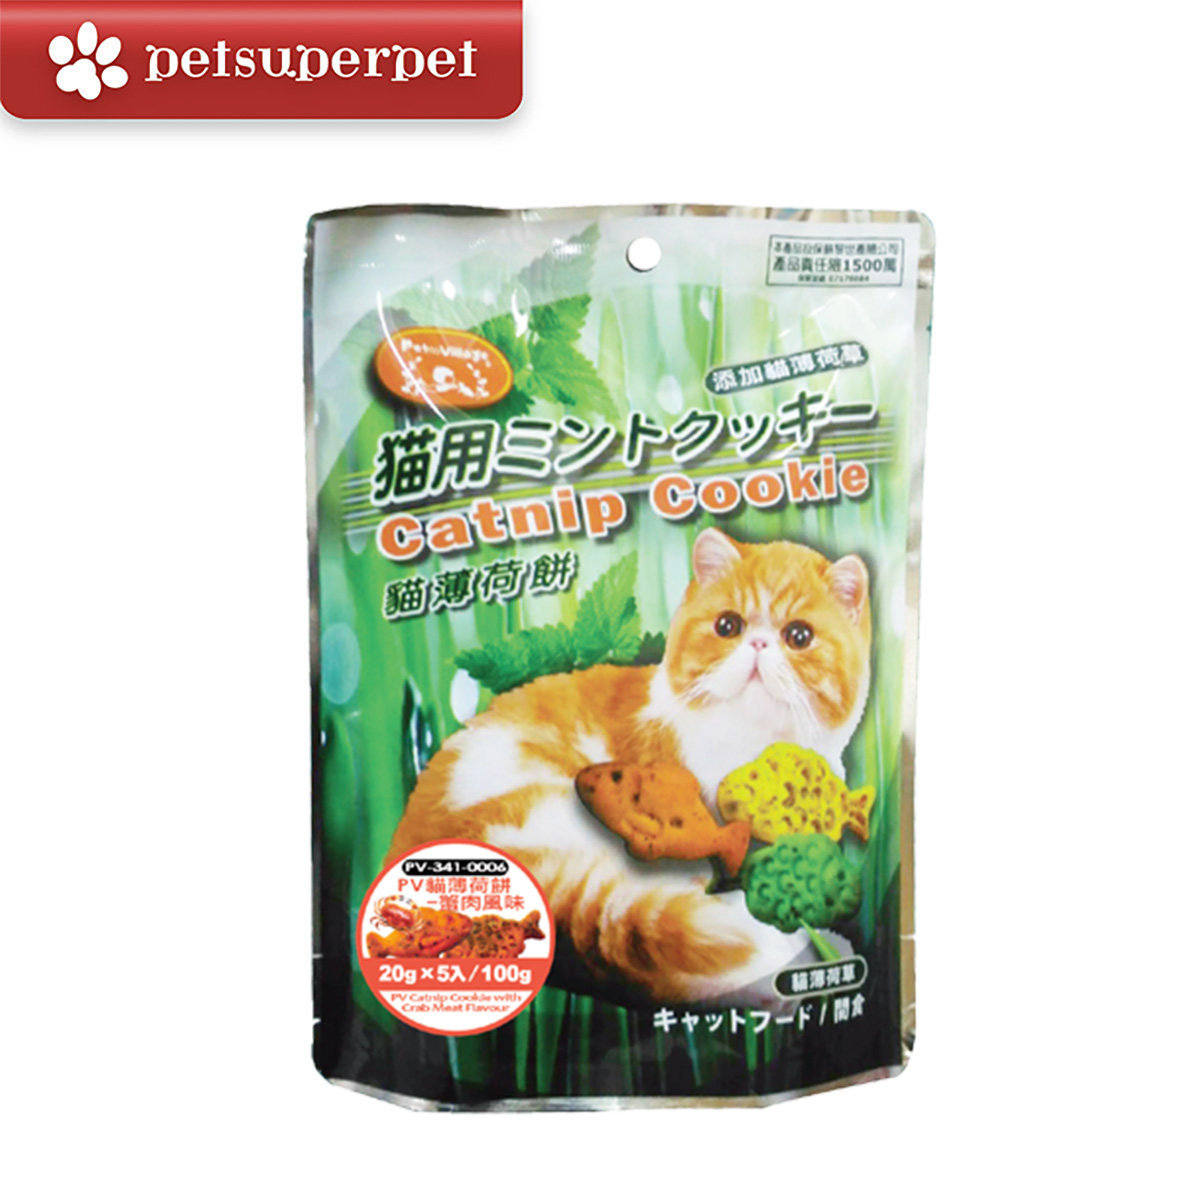 Cat Treat PV Catnip Cookie with Crab Flavour 20gX5pcs 100g